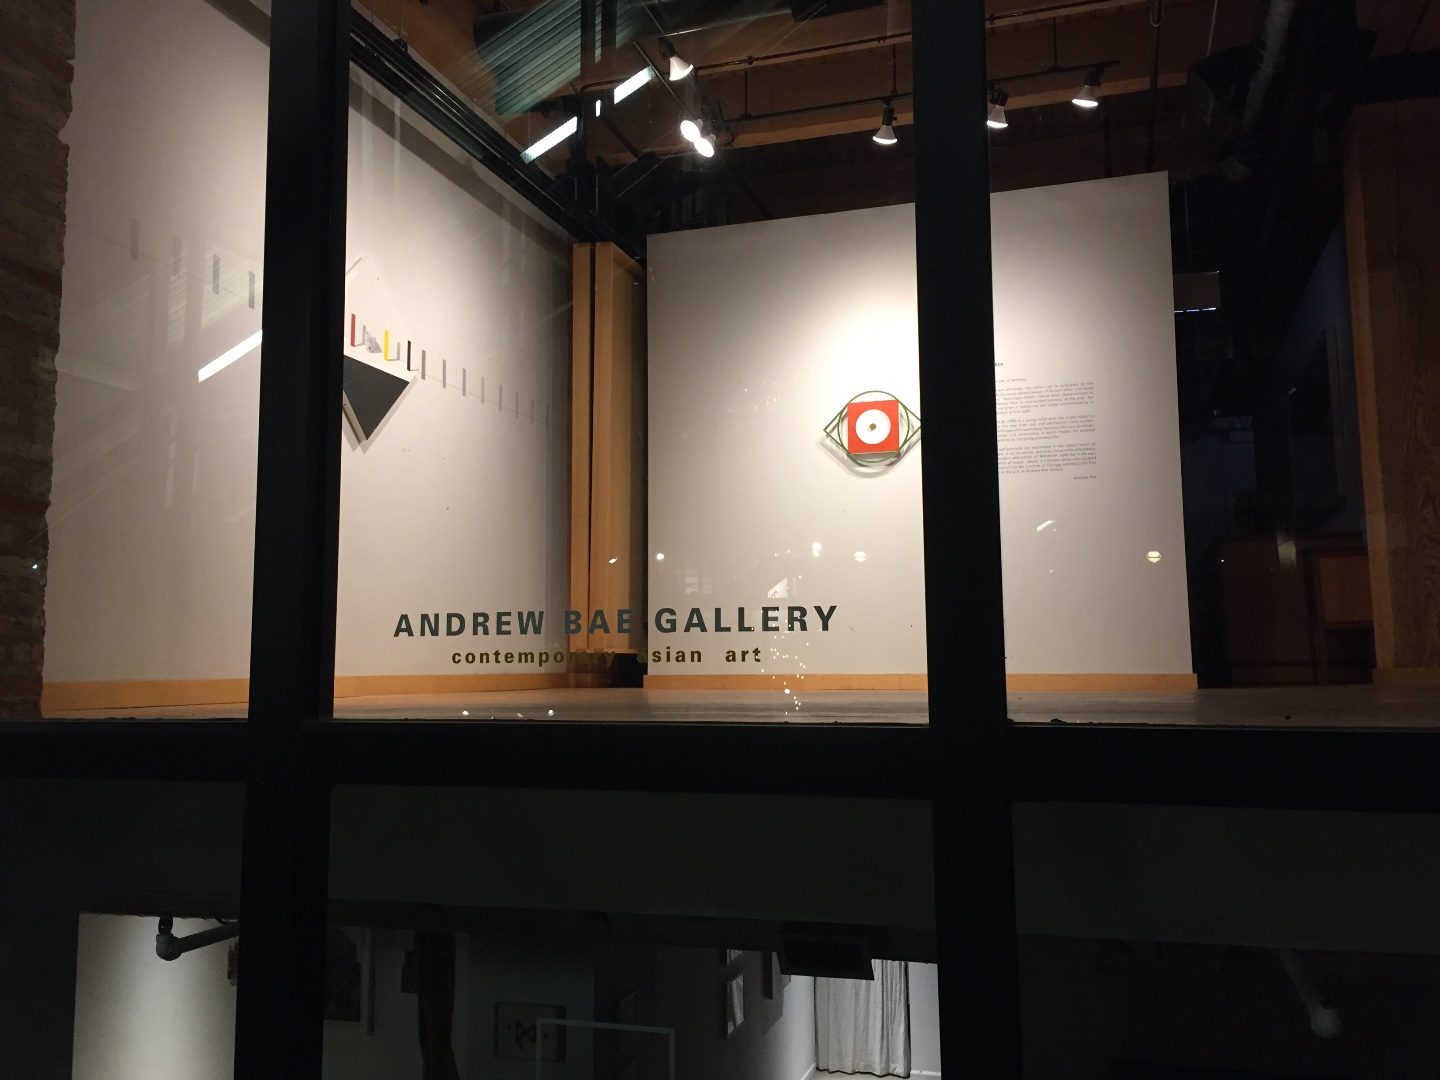 US shipping companies; Andrew Bae Gallery